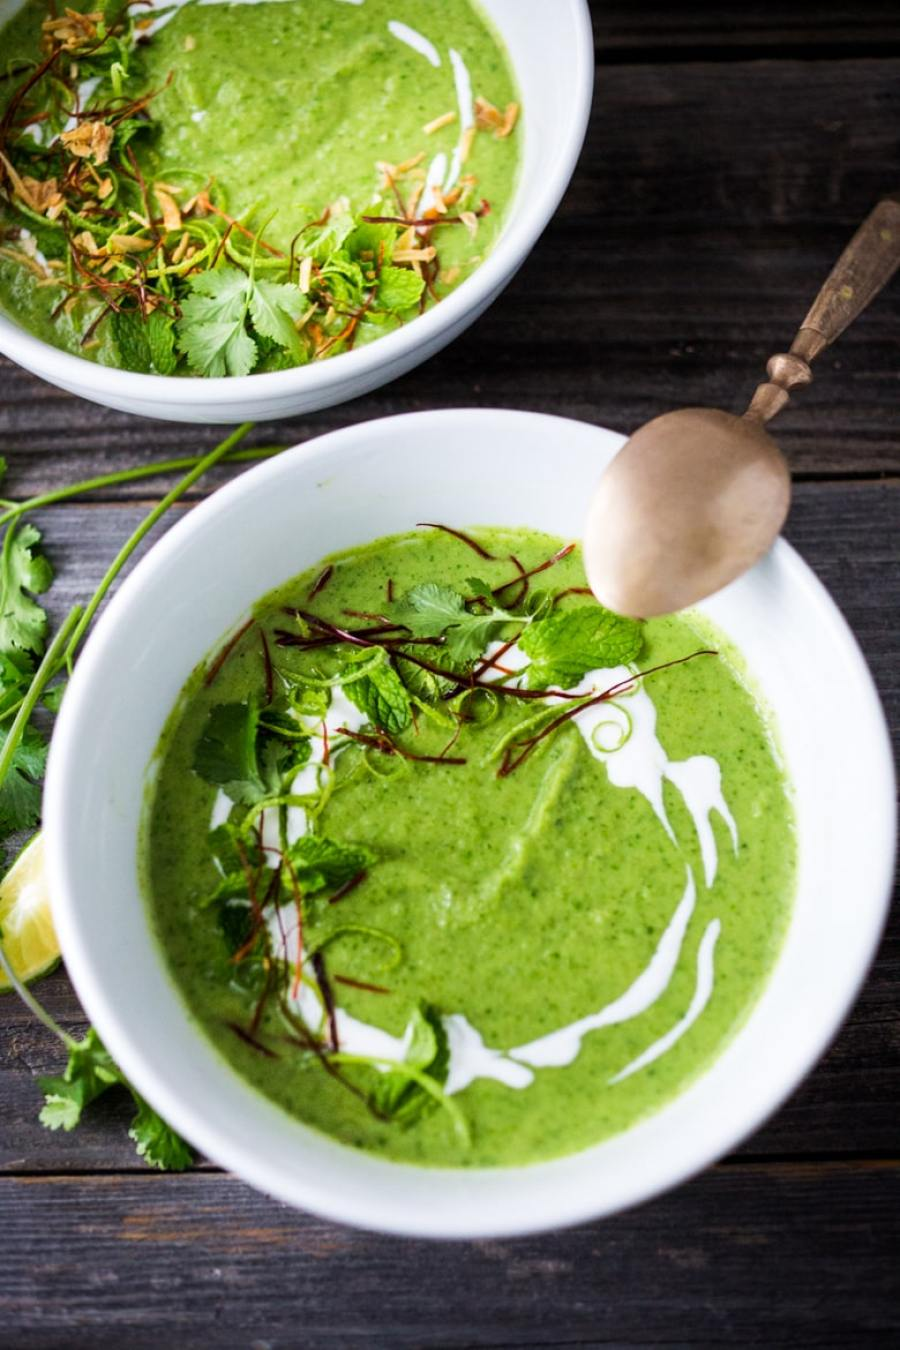 EAT CLEAN with these 20 simple Plant-Based Meals    Thai Broccoli Soup with Coconut & Lime - bursting with authentic Thai flavors.   www.feastingathome.com